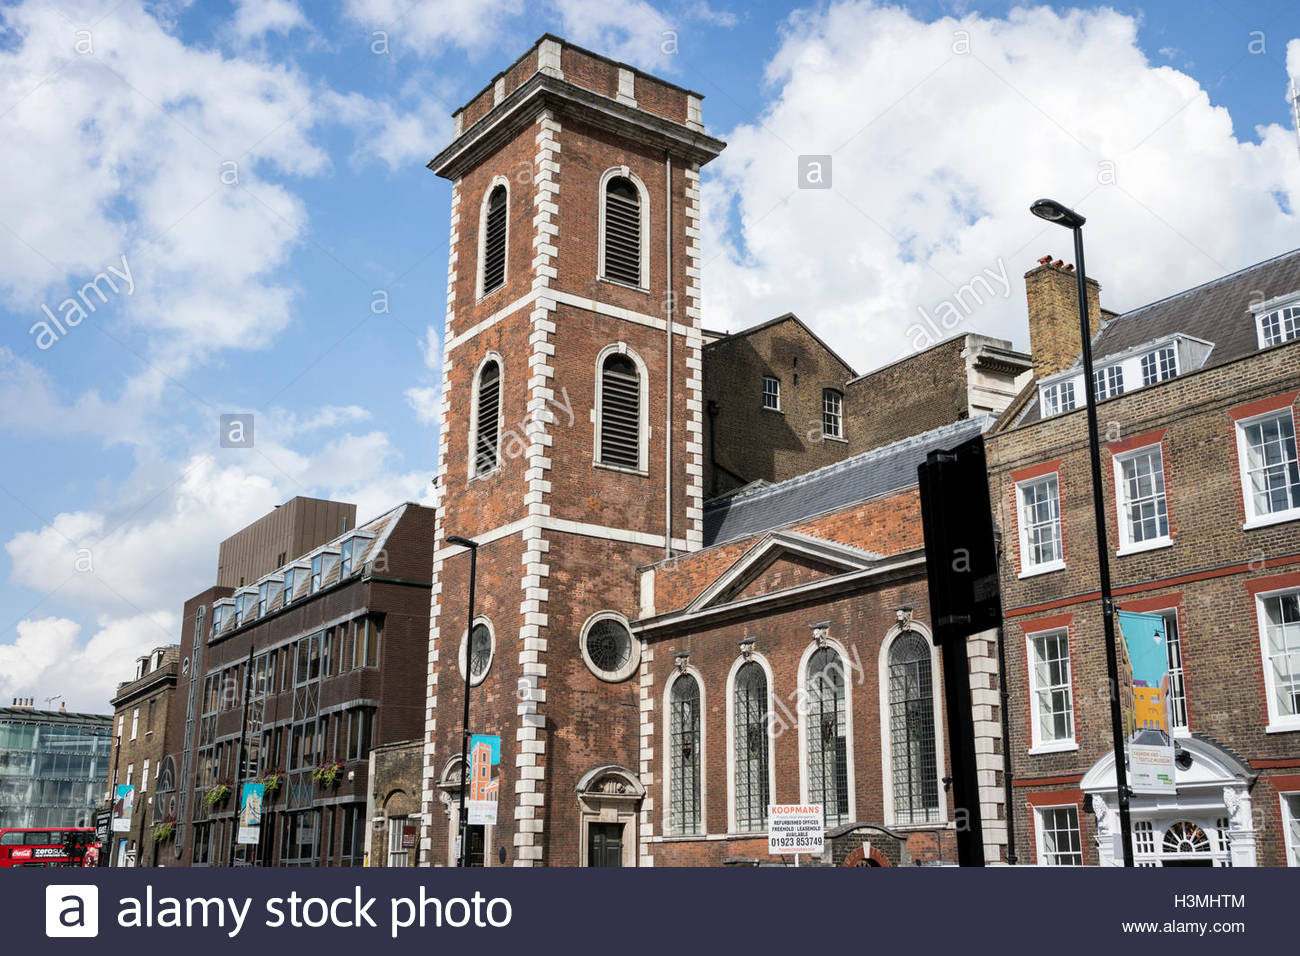 Old Operating Theatre Building in London Bridge, London, England, UK - Stock Image